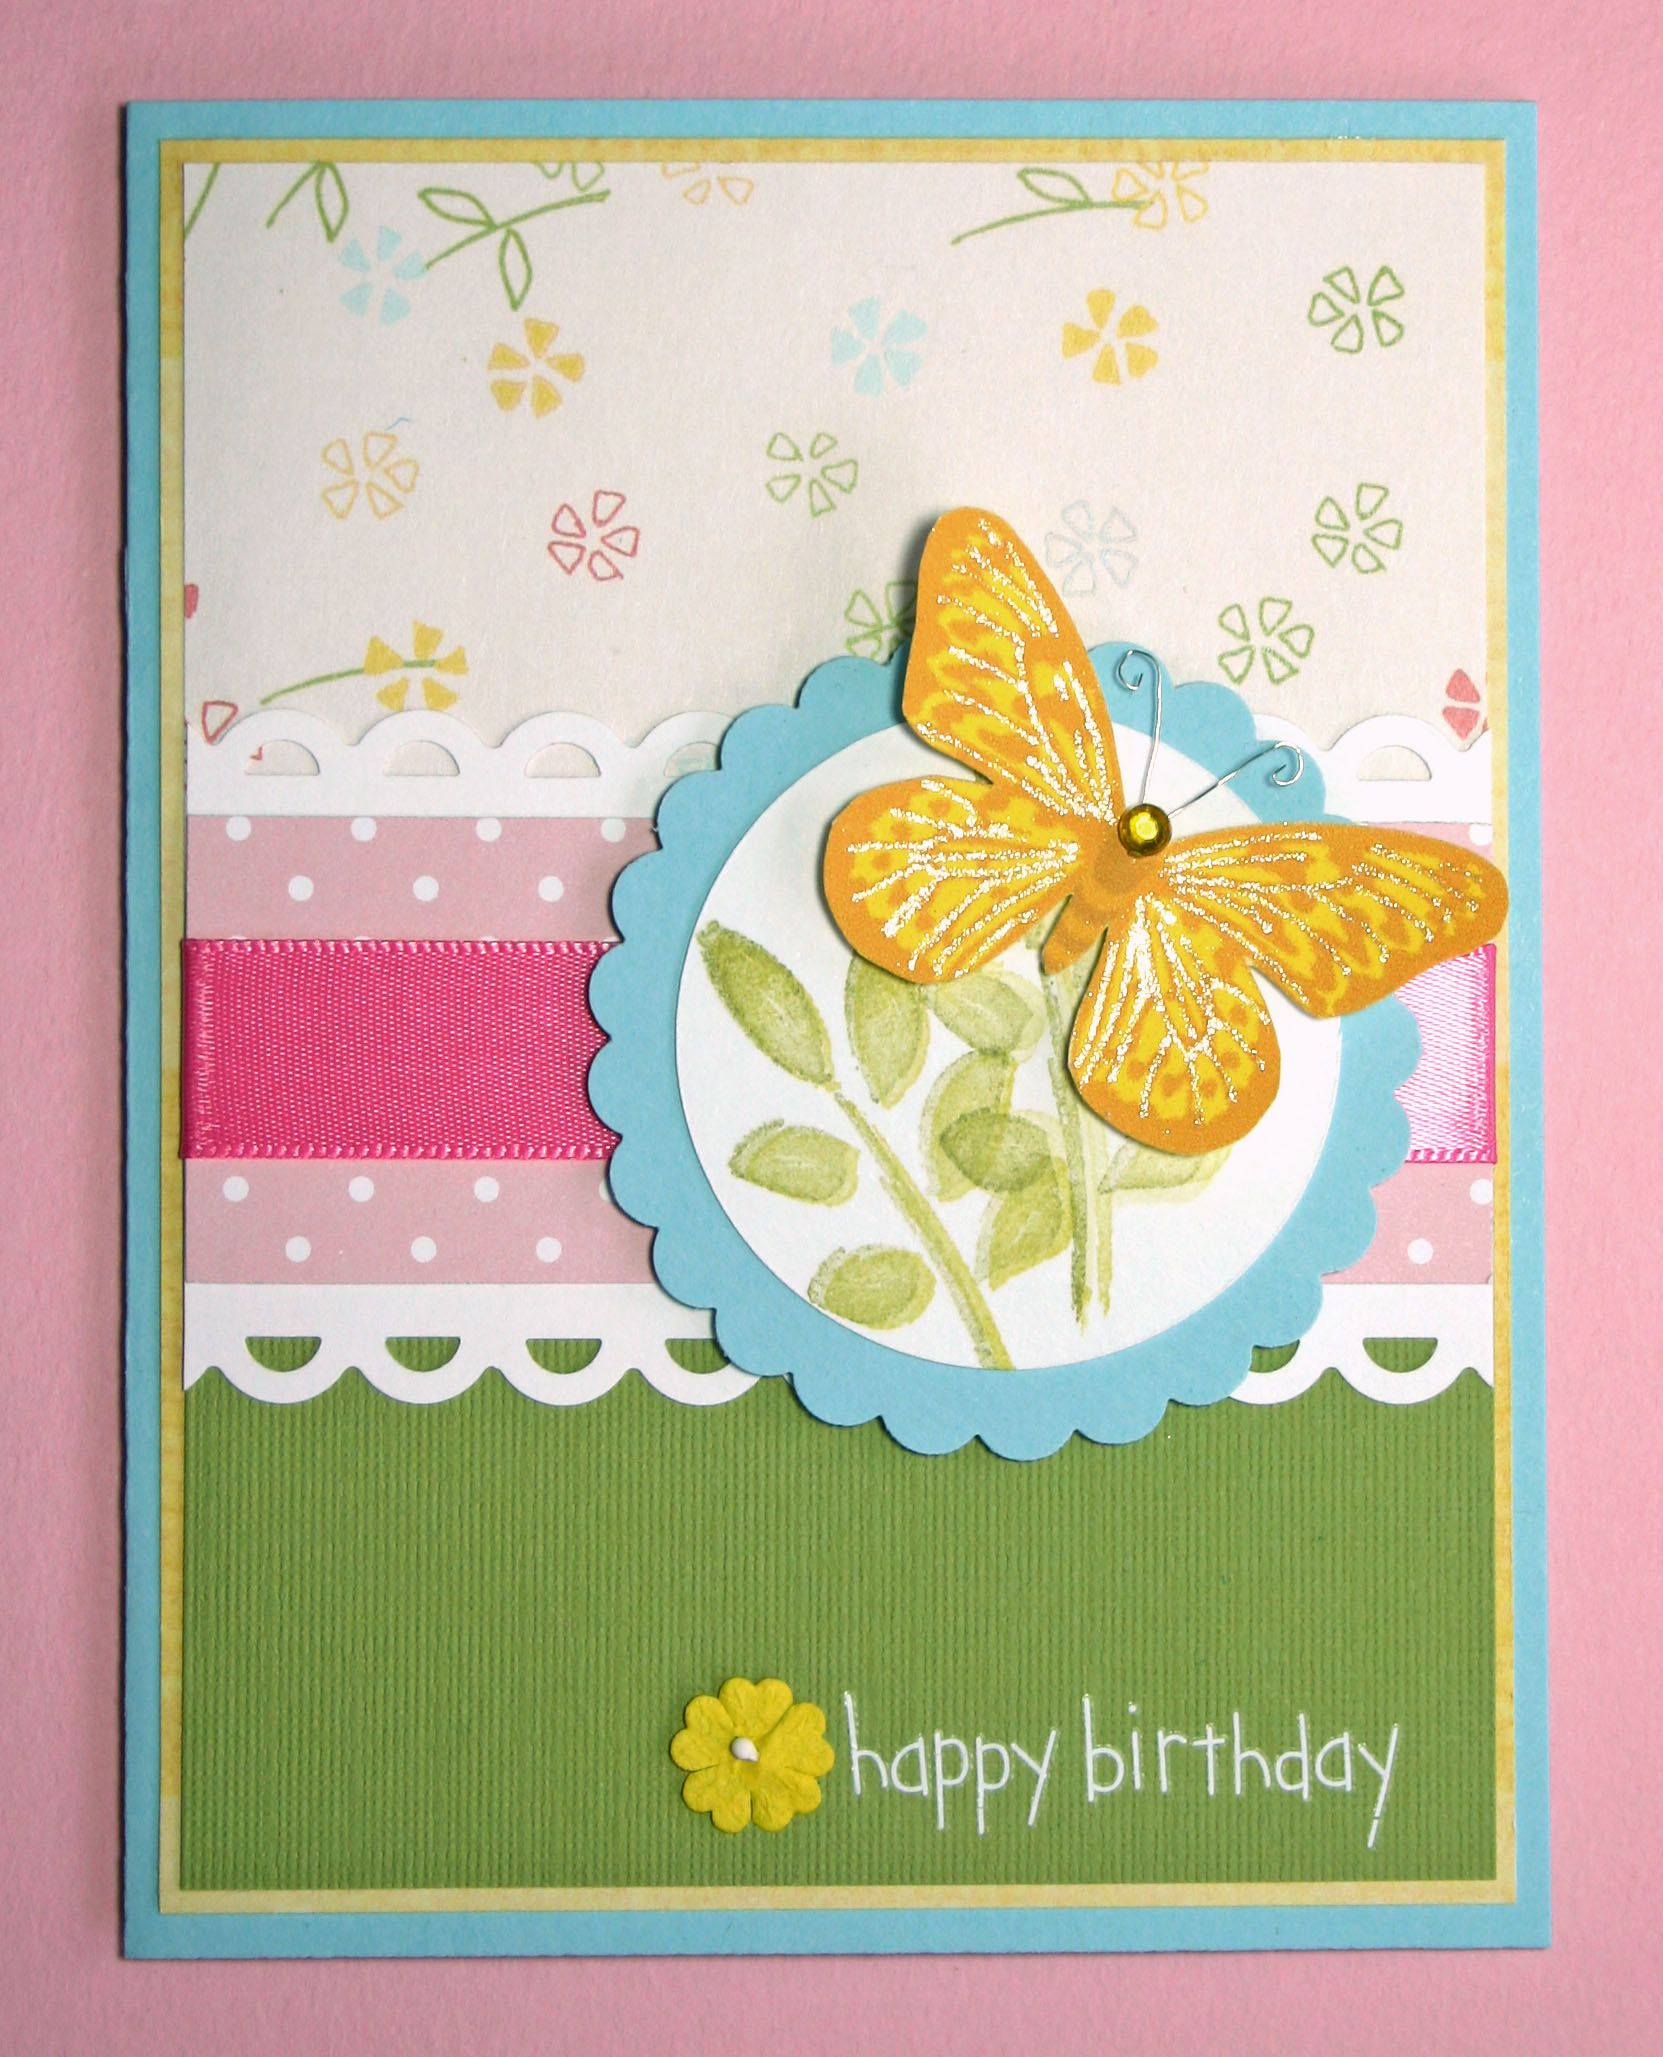 Handmade card happy birthday butterfly family friends homemade homemade birthday cards details about handmade card happy birthday butterfly family friends kristyandbryce Images